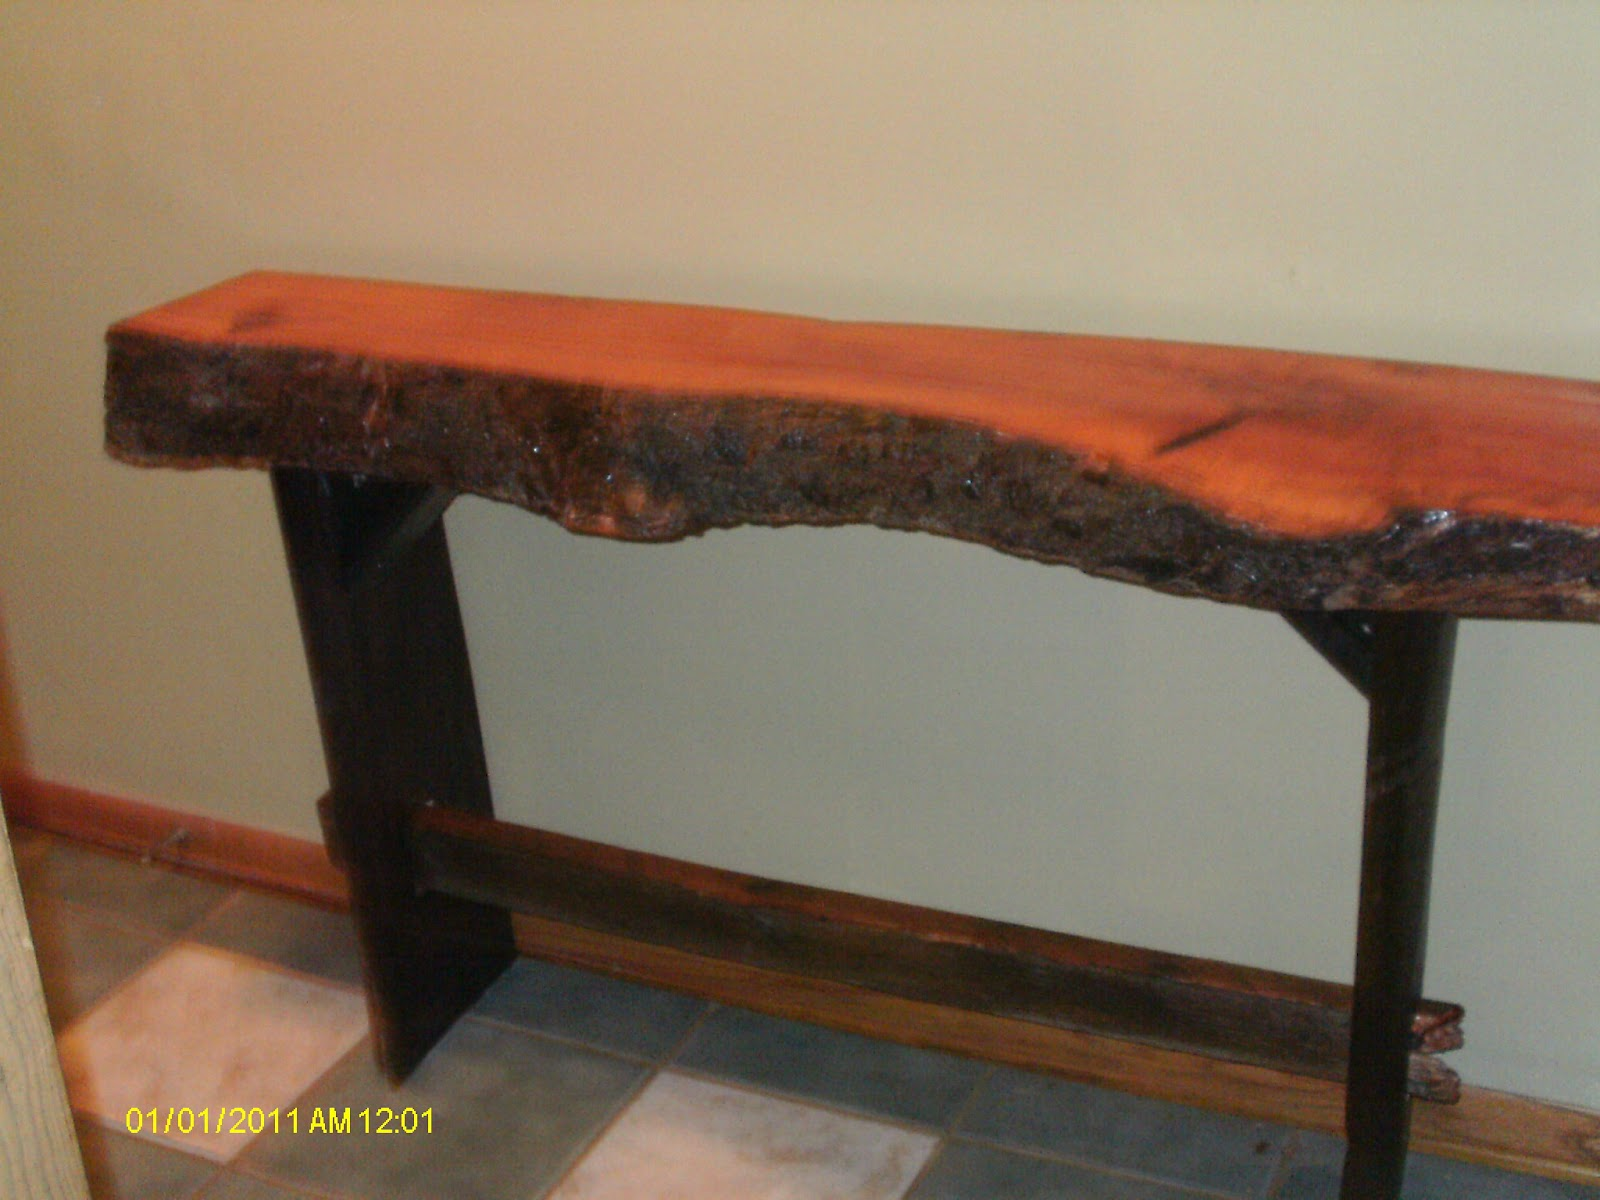 Handmade rustic log furniture 4 39 long x 32 tall x 10 for 10 deep console table